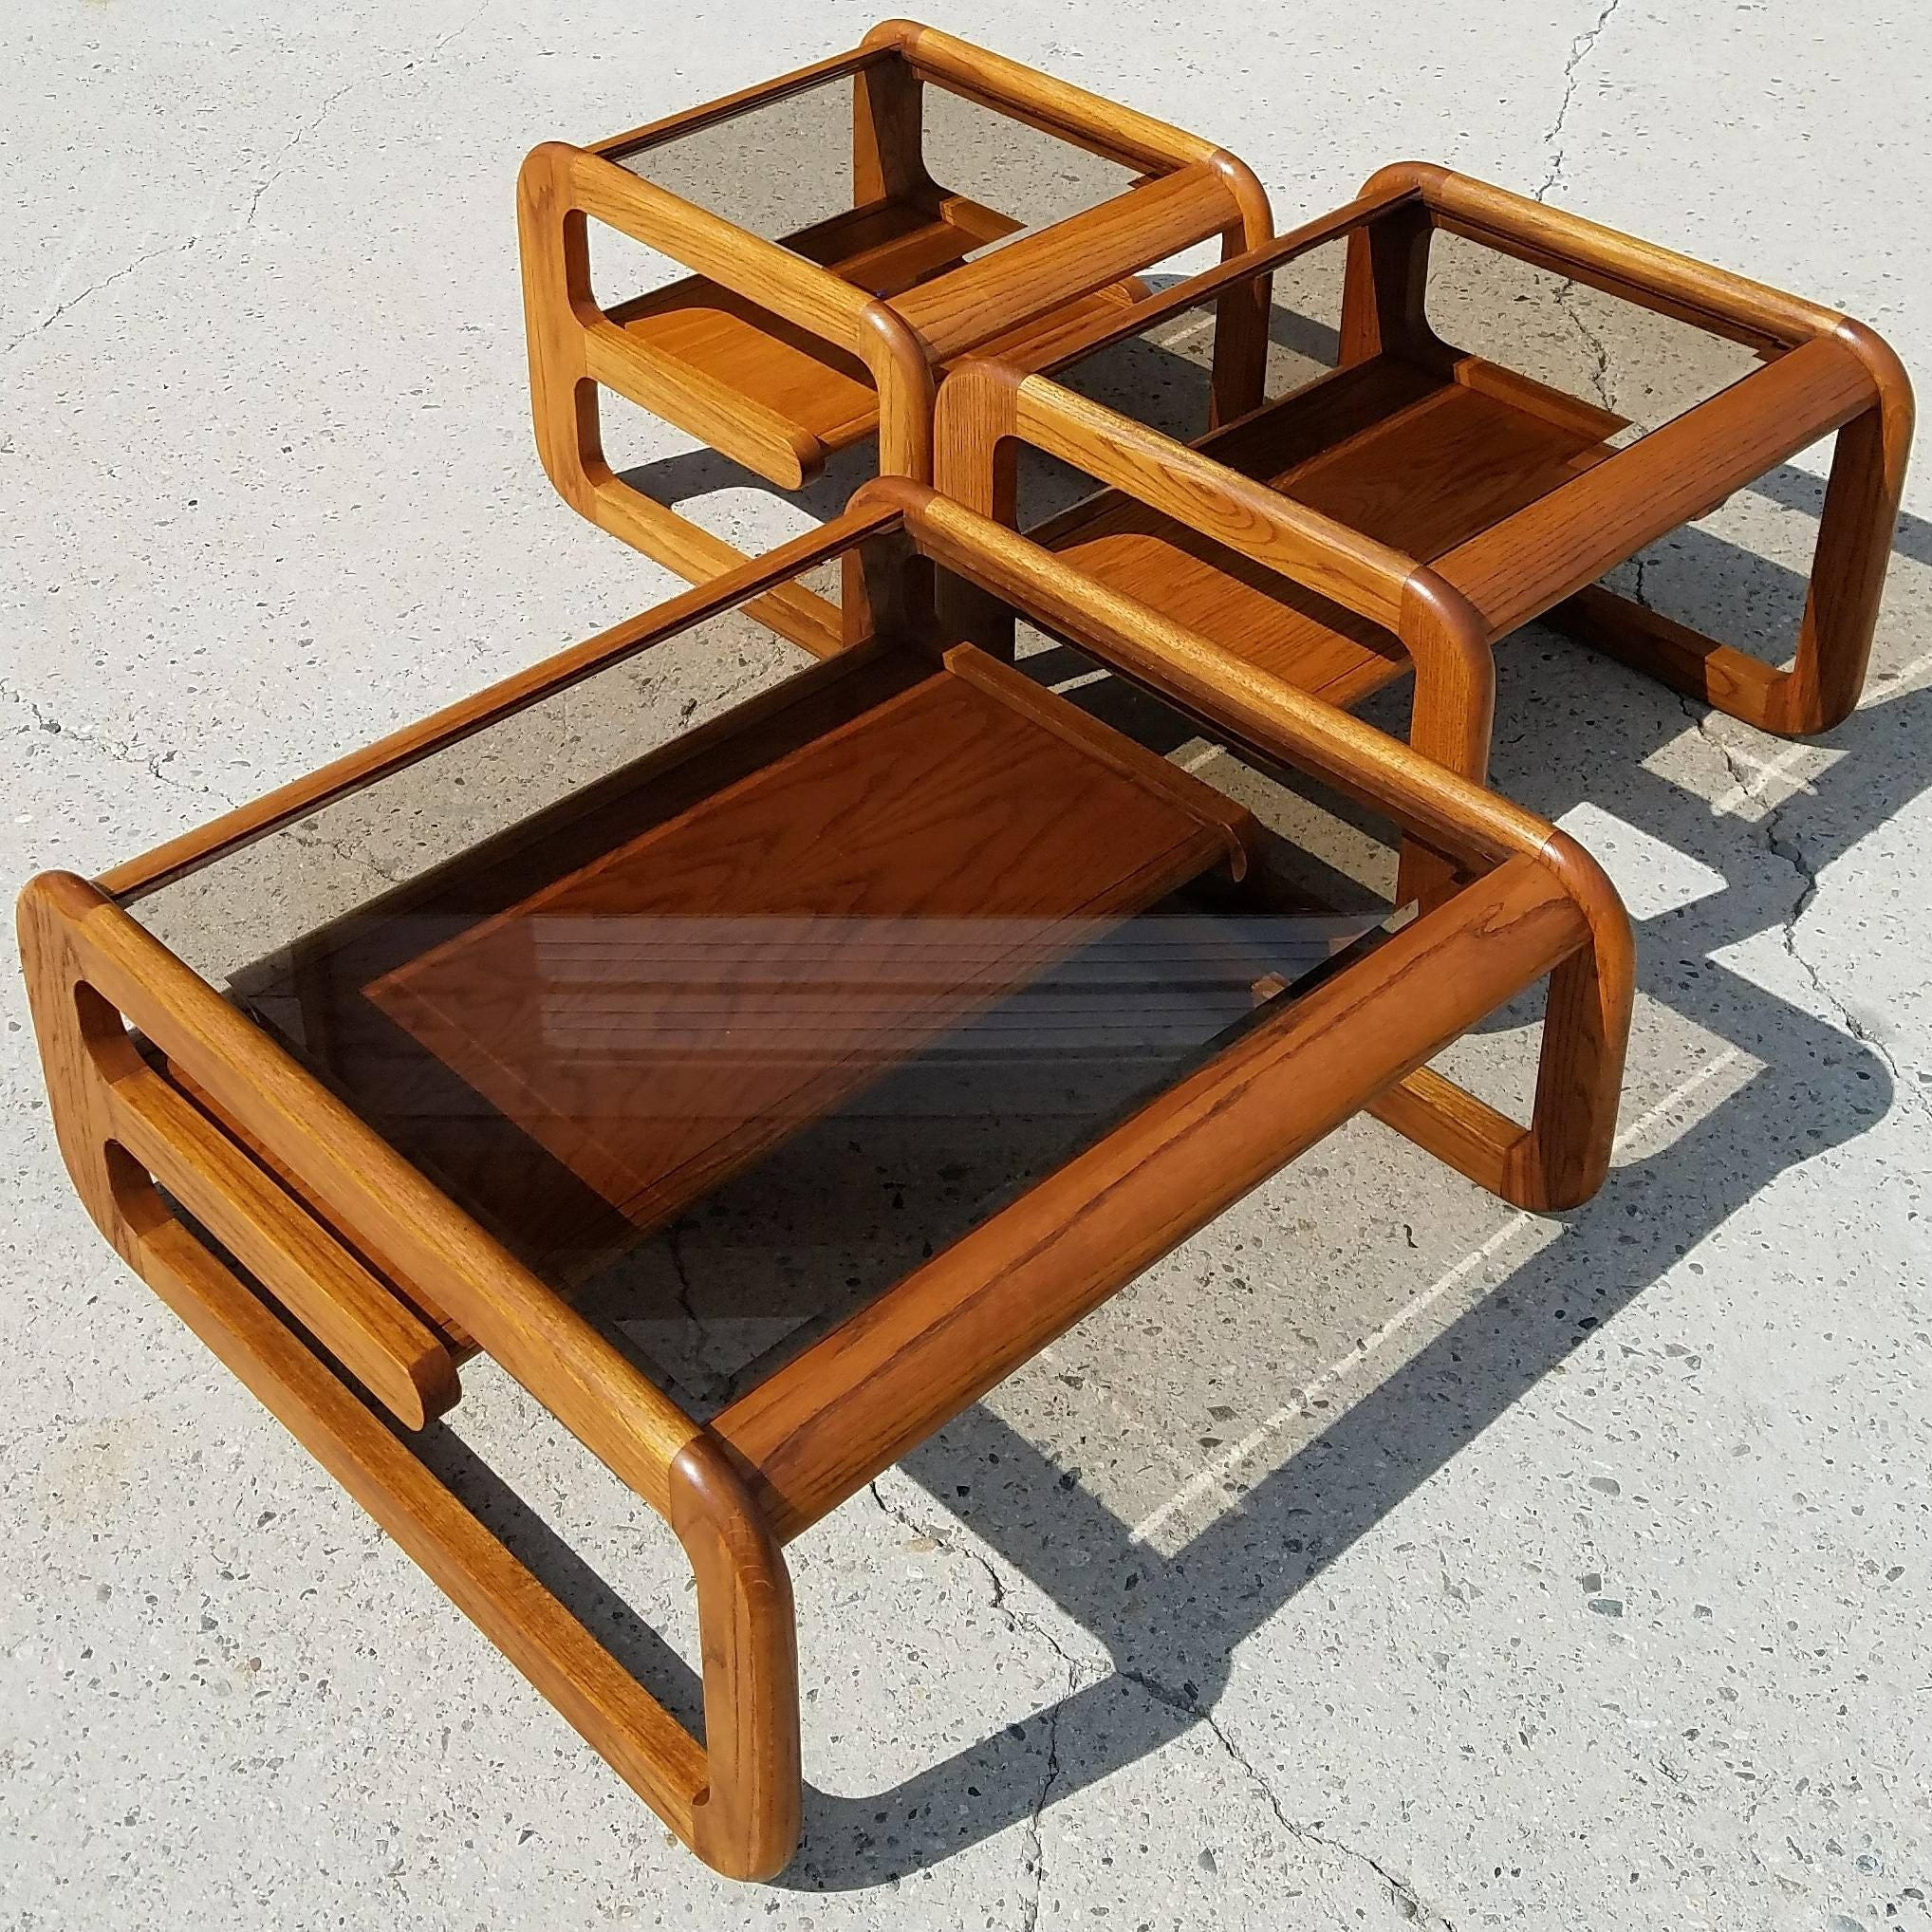 Set of Danish Modern Cantilever Tables by Lou Hodges for